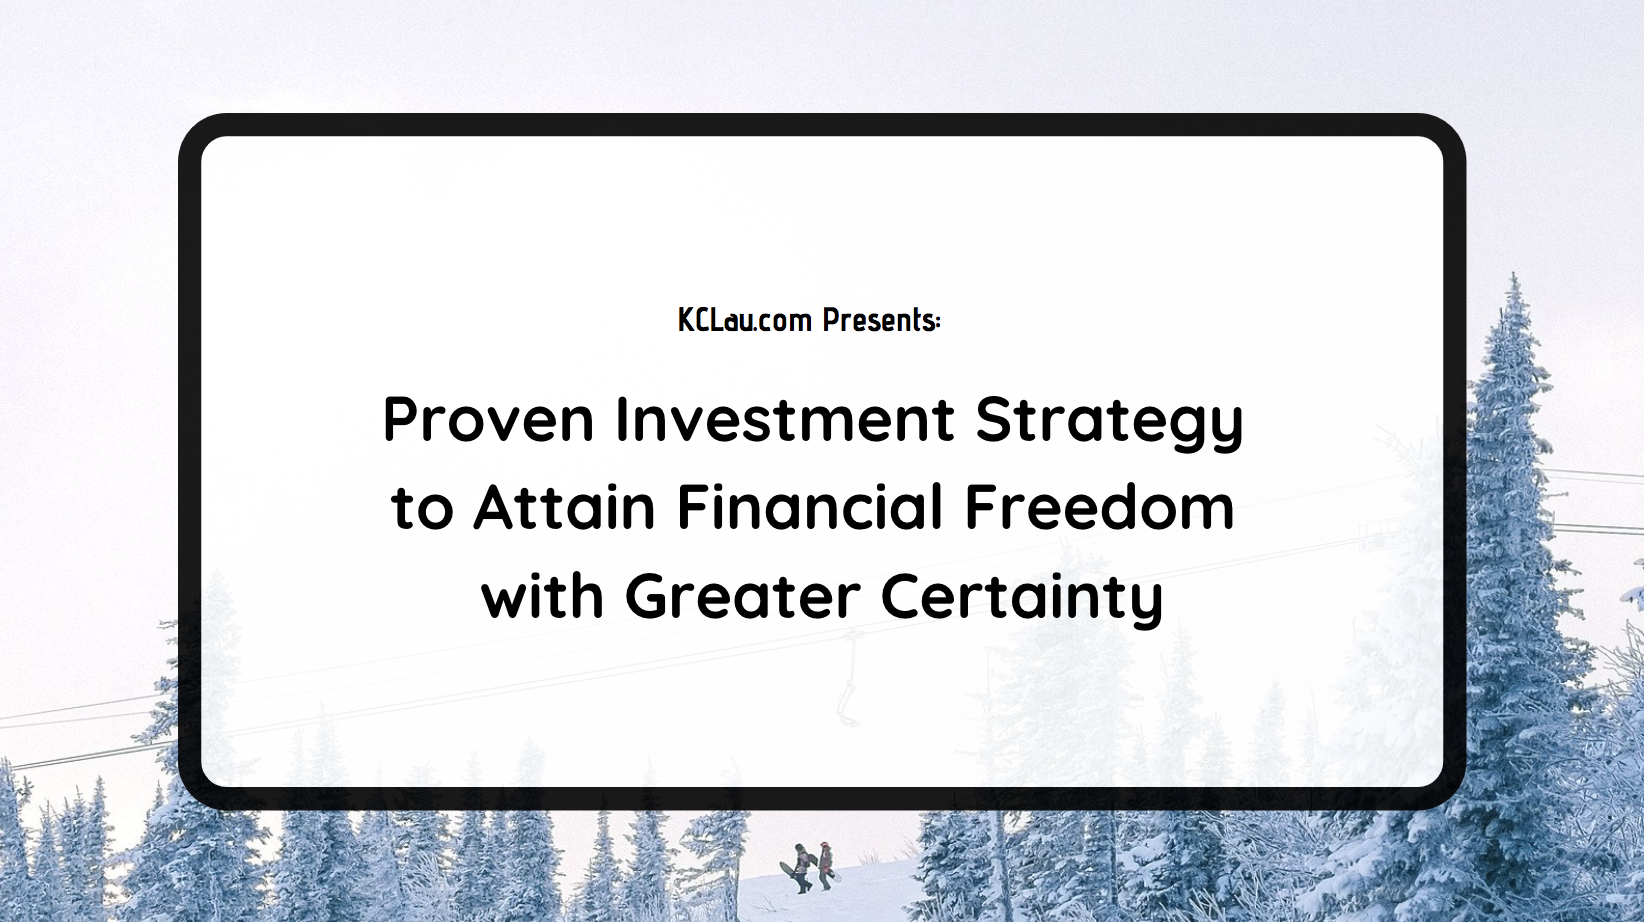 Proven Investment Strategy to Attain Financial Freedom with Greater Certainty